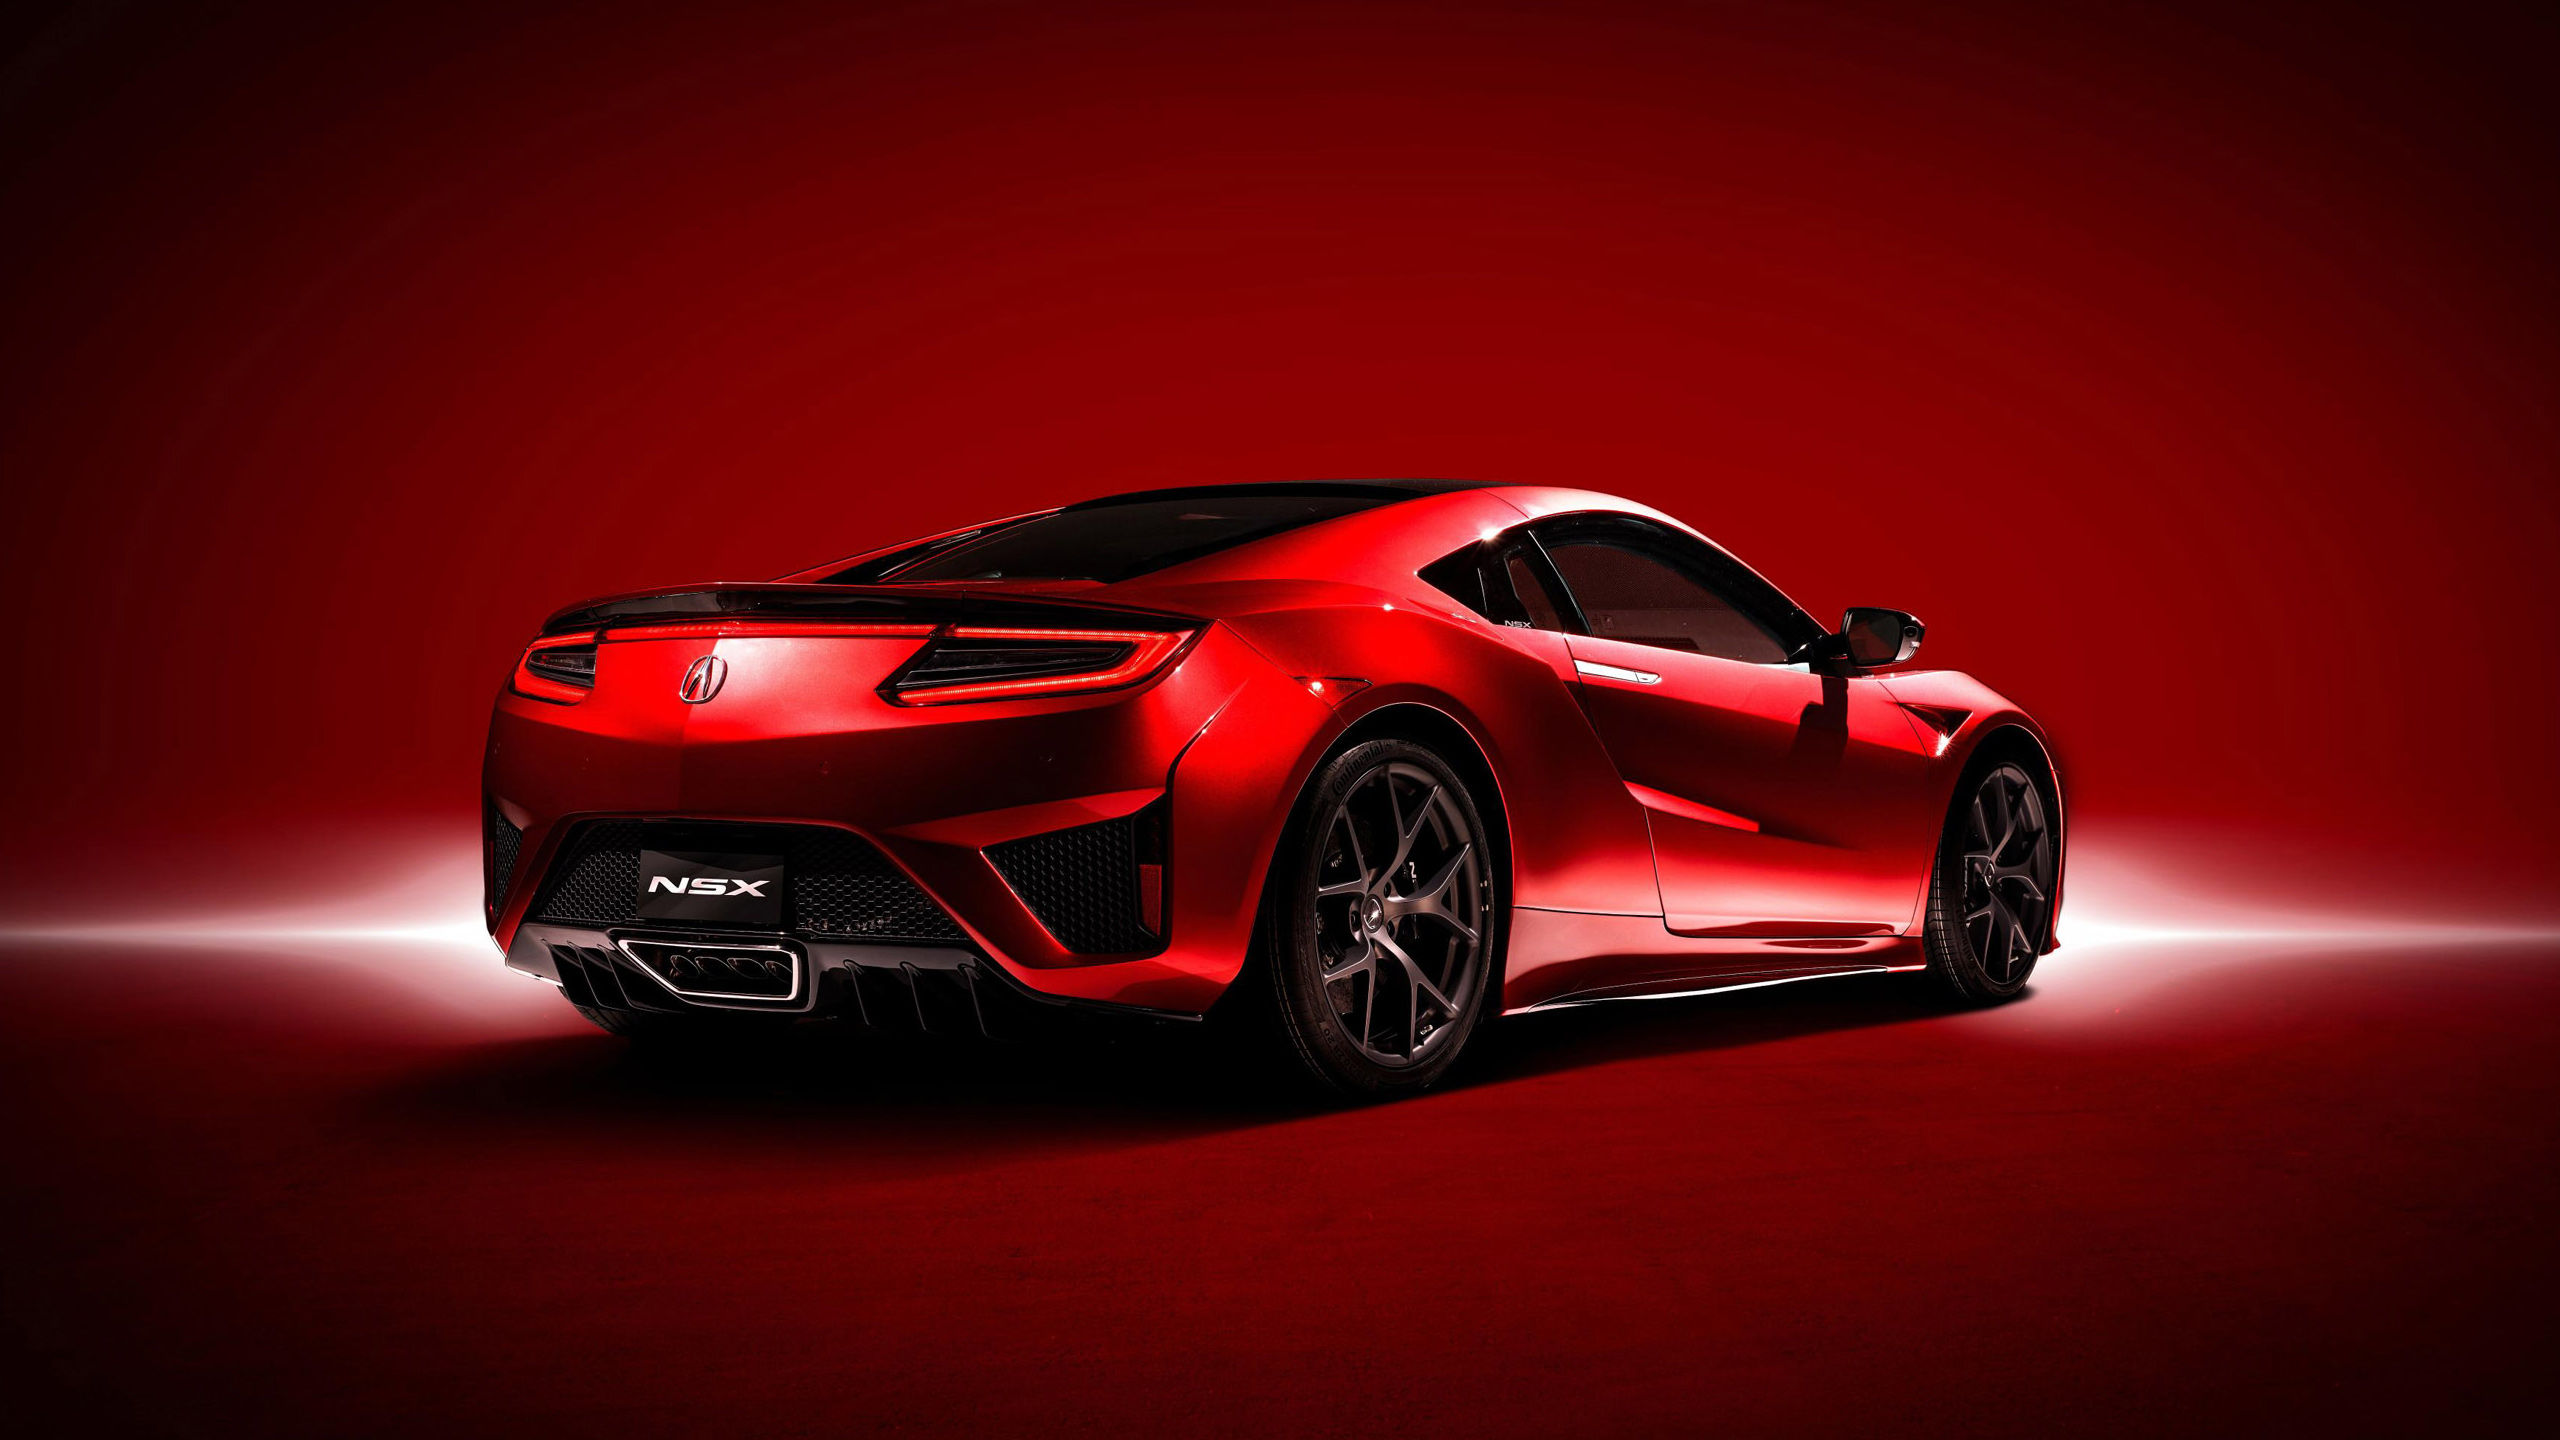 Acura nsx 2017 2 wallpaper hd car wallpapers